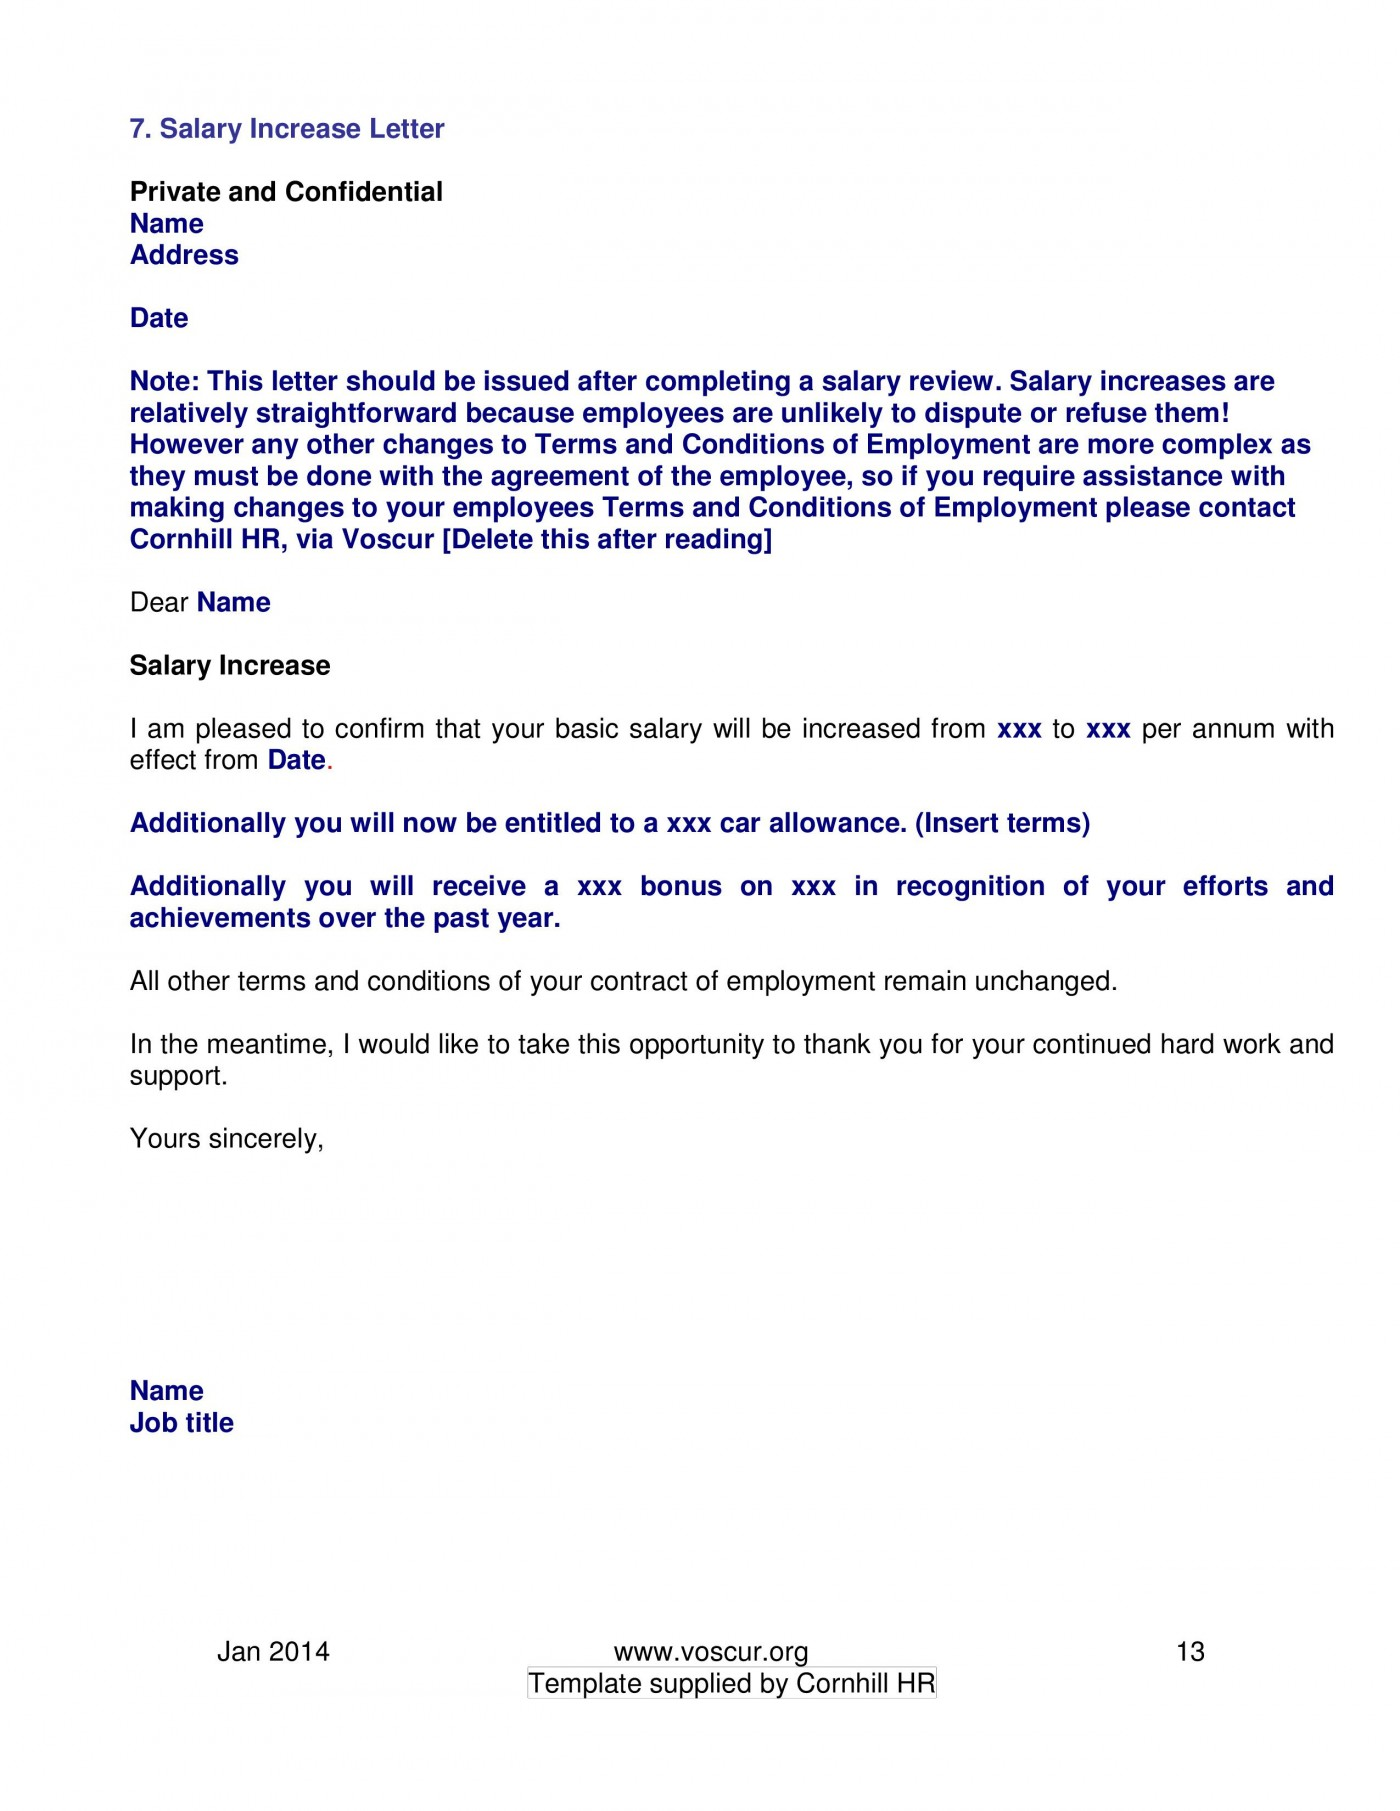 002 Excellent Salary Increase Letter Template High Resolution  From Employer To Employee Australia No For1400